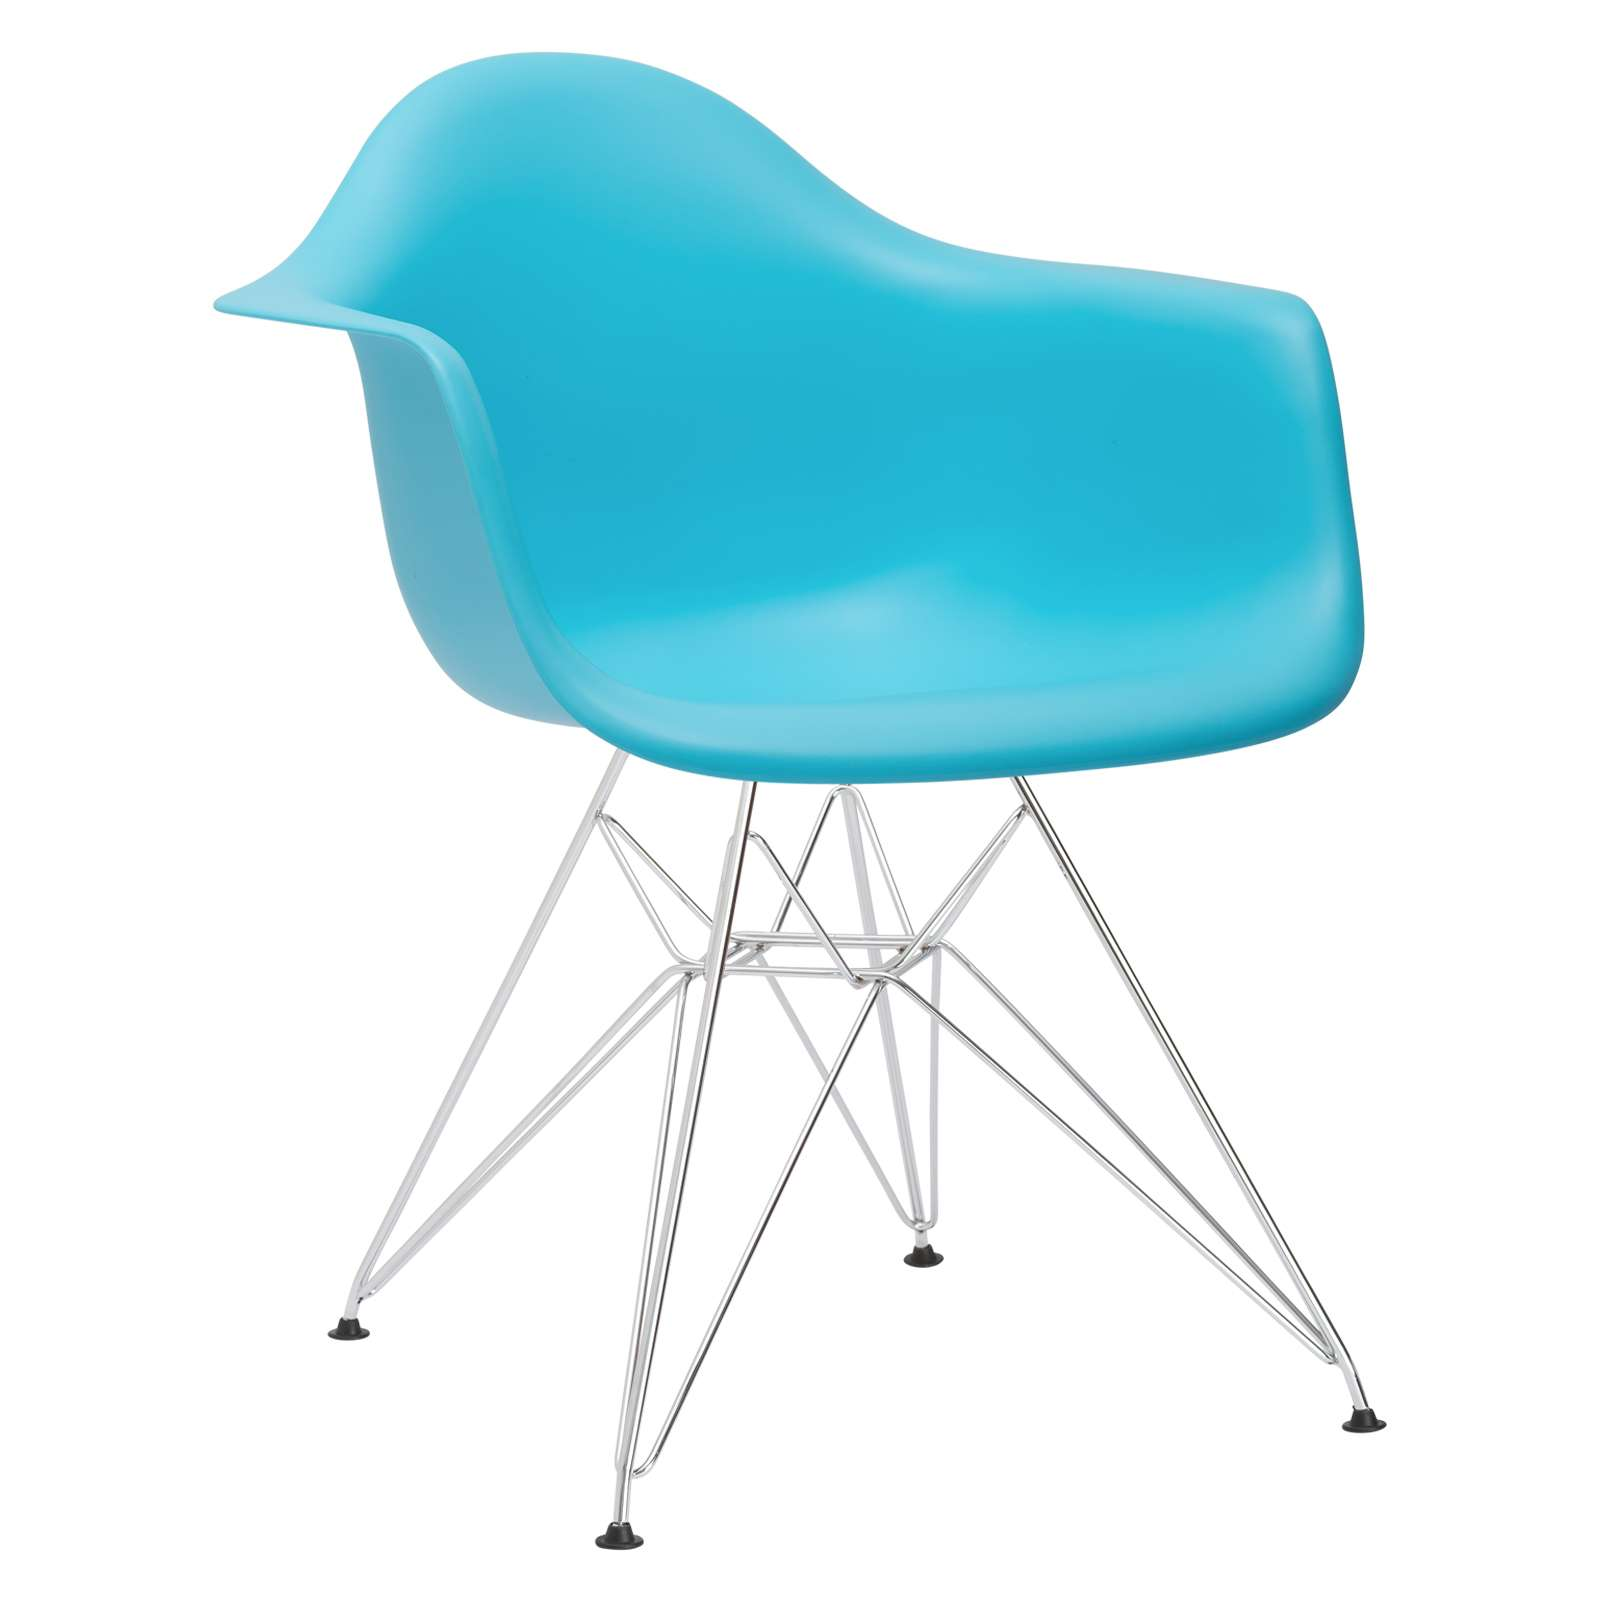 Padget Arm Chair in Aqua - Set of 2